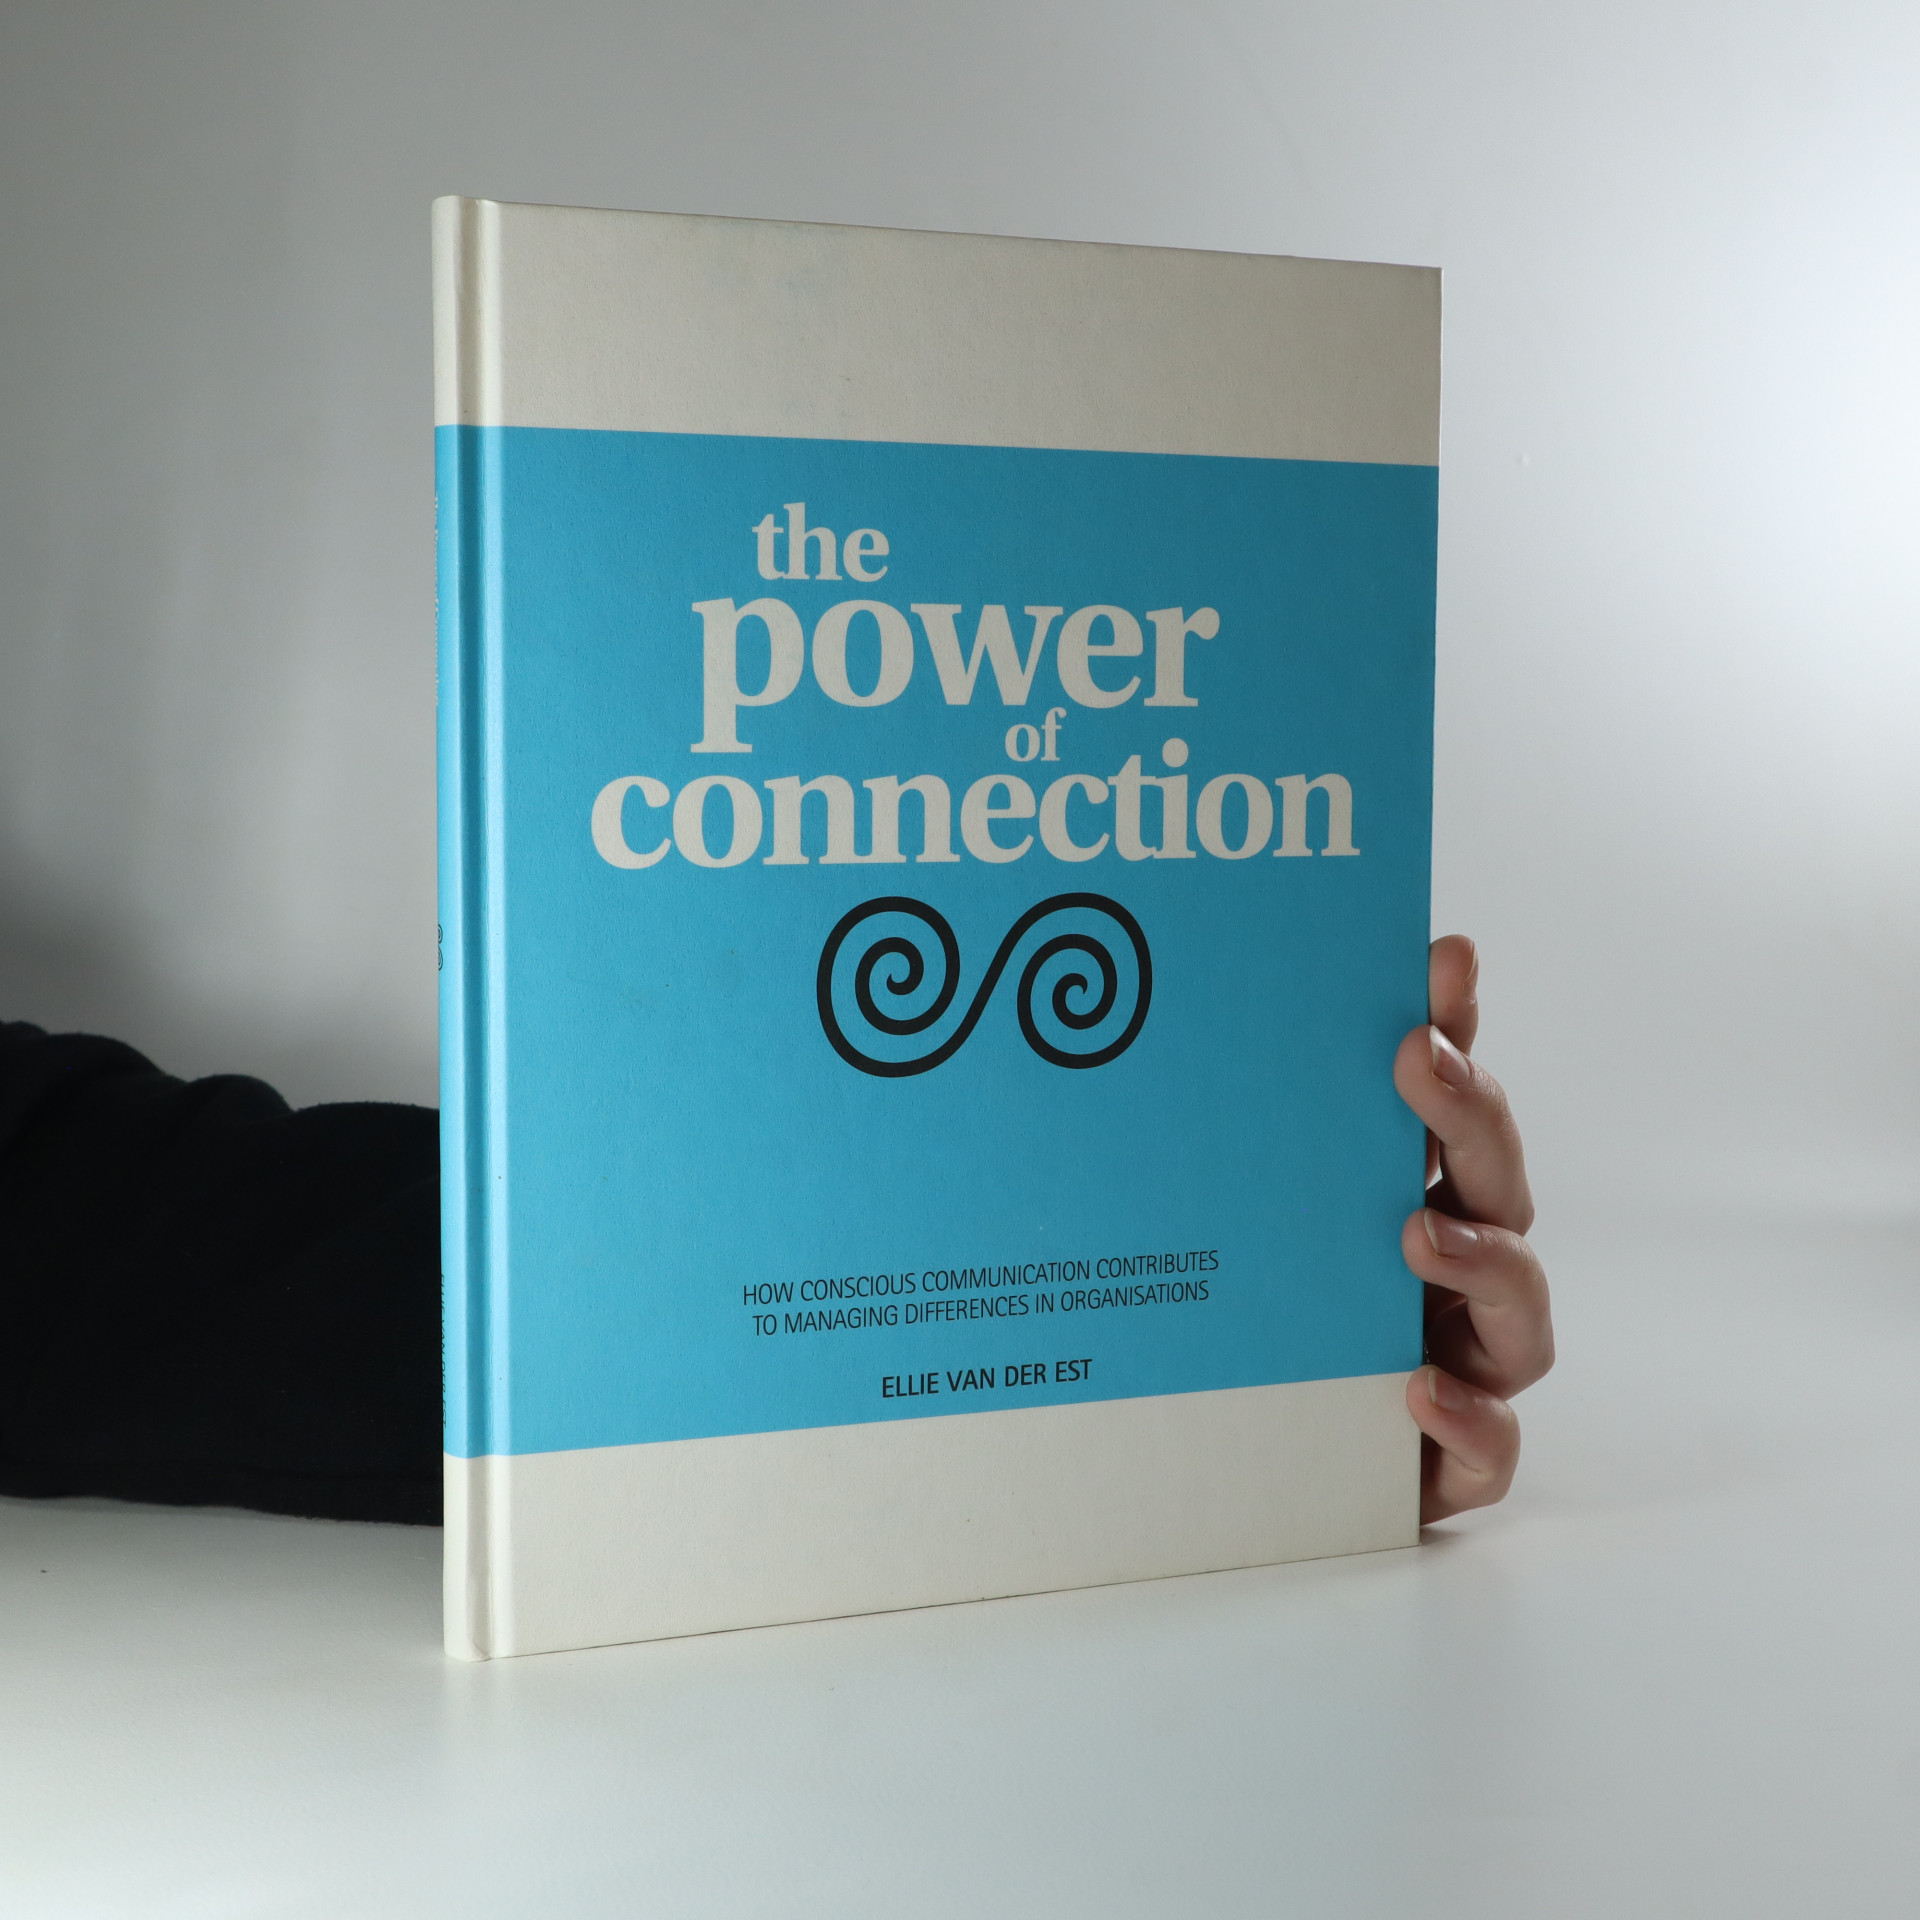 antikvární kniha The Power of Connection, 2012